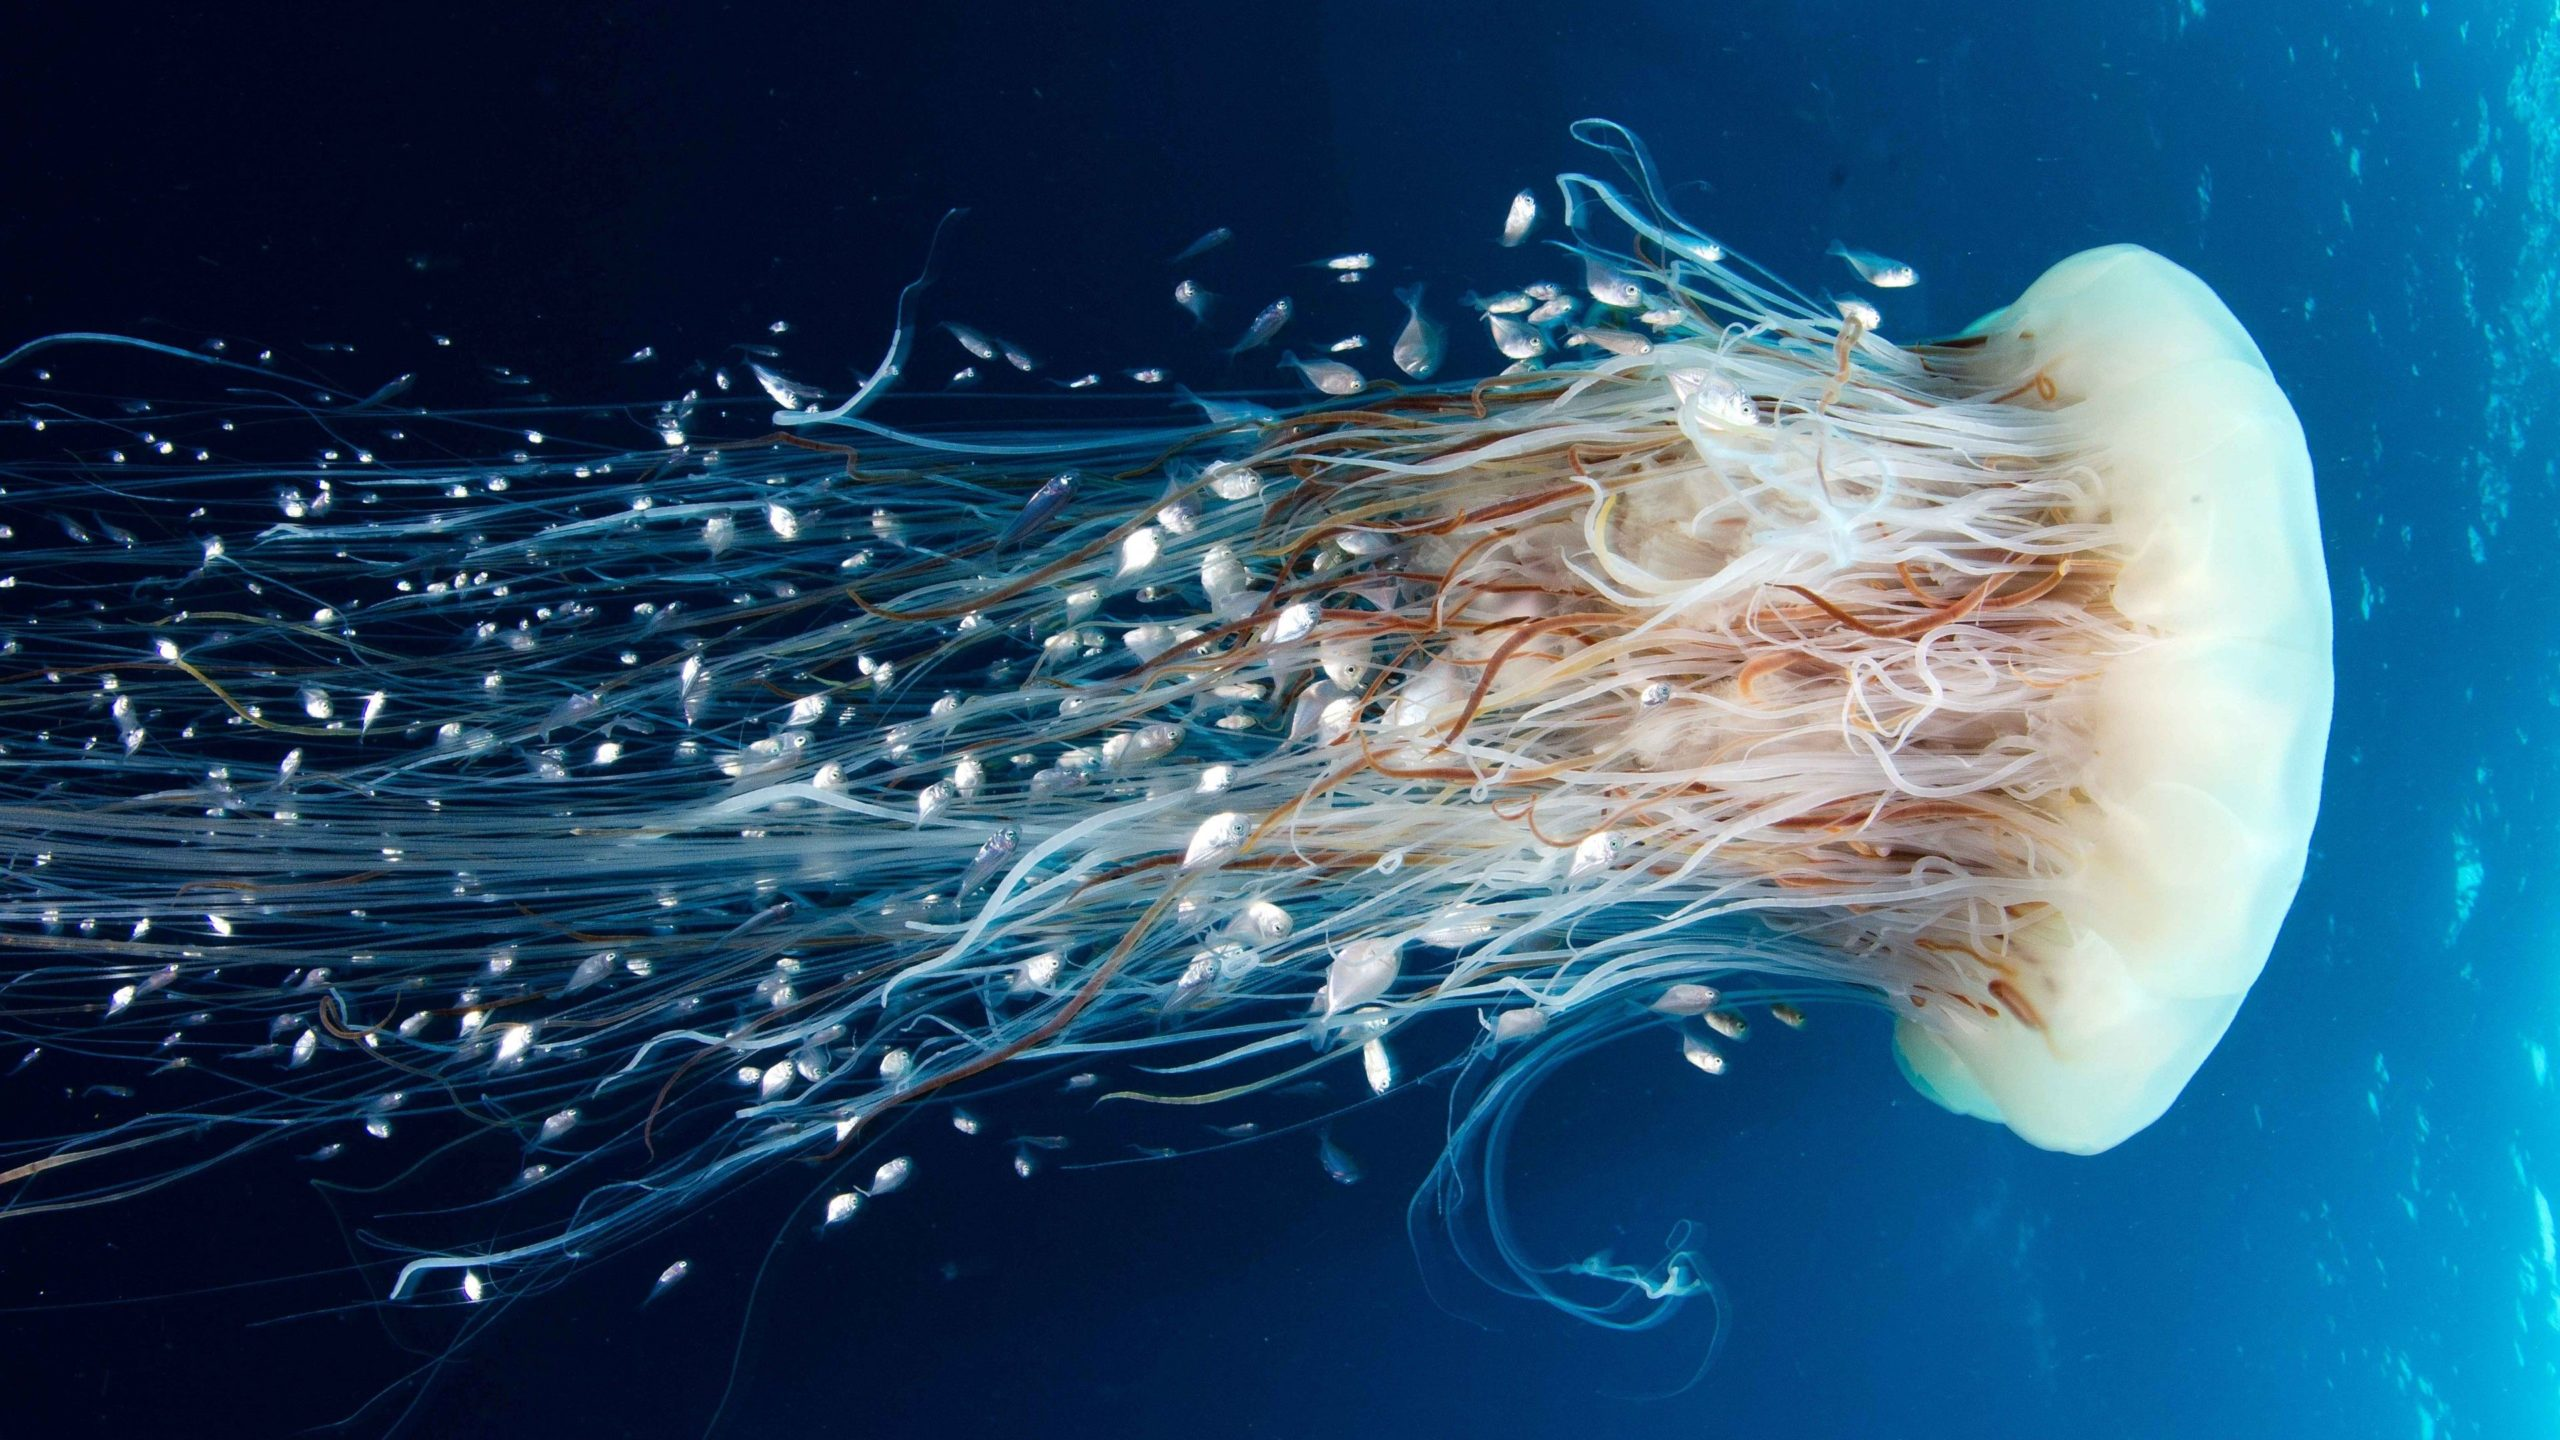 photos of jellyfish